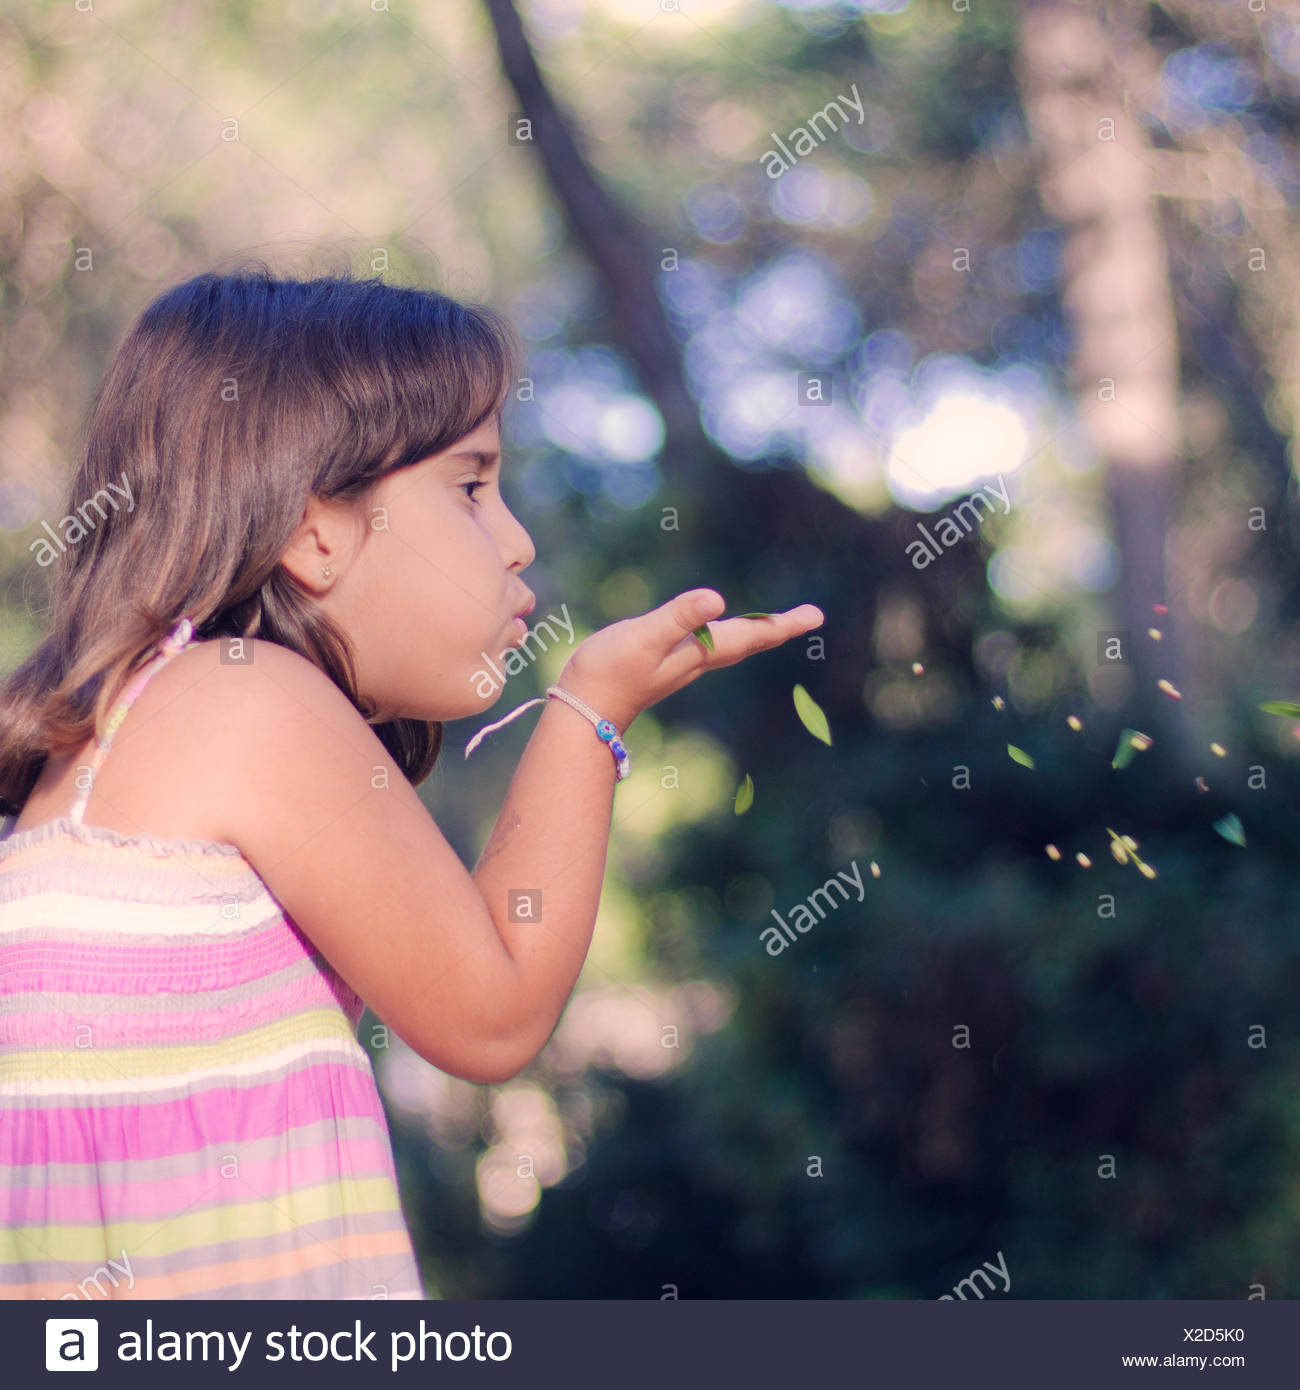 Girl (6-7) blowing leaves from hand - Stock Image